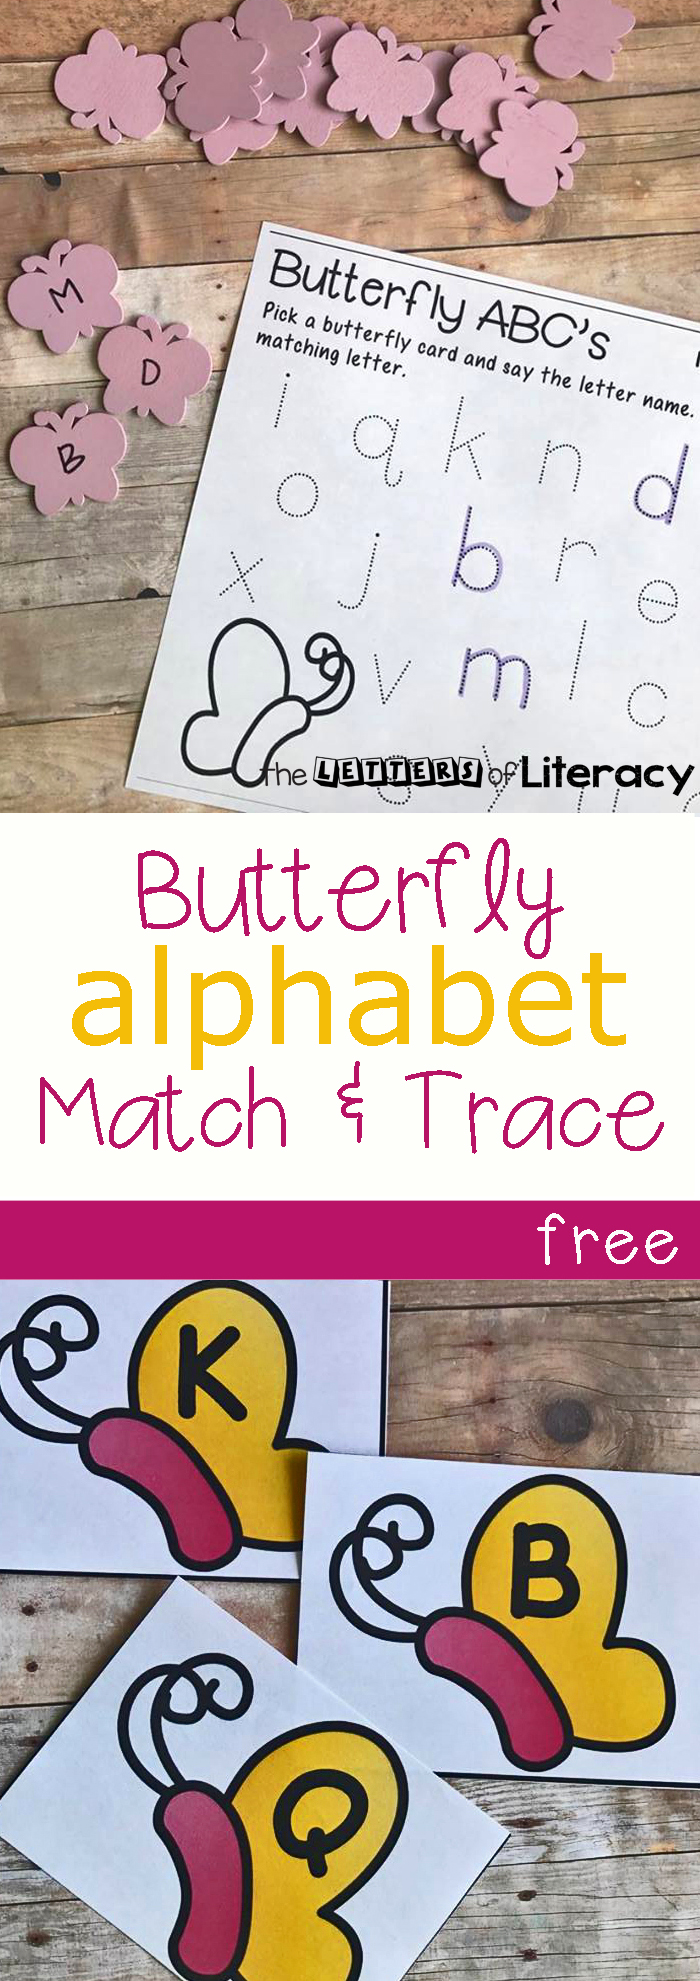 Butterfly Alphabet Match Trace With Free Printables